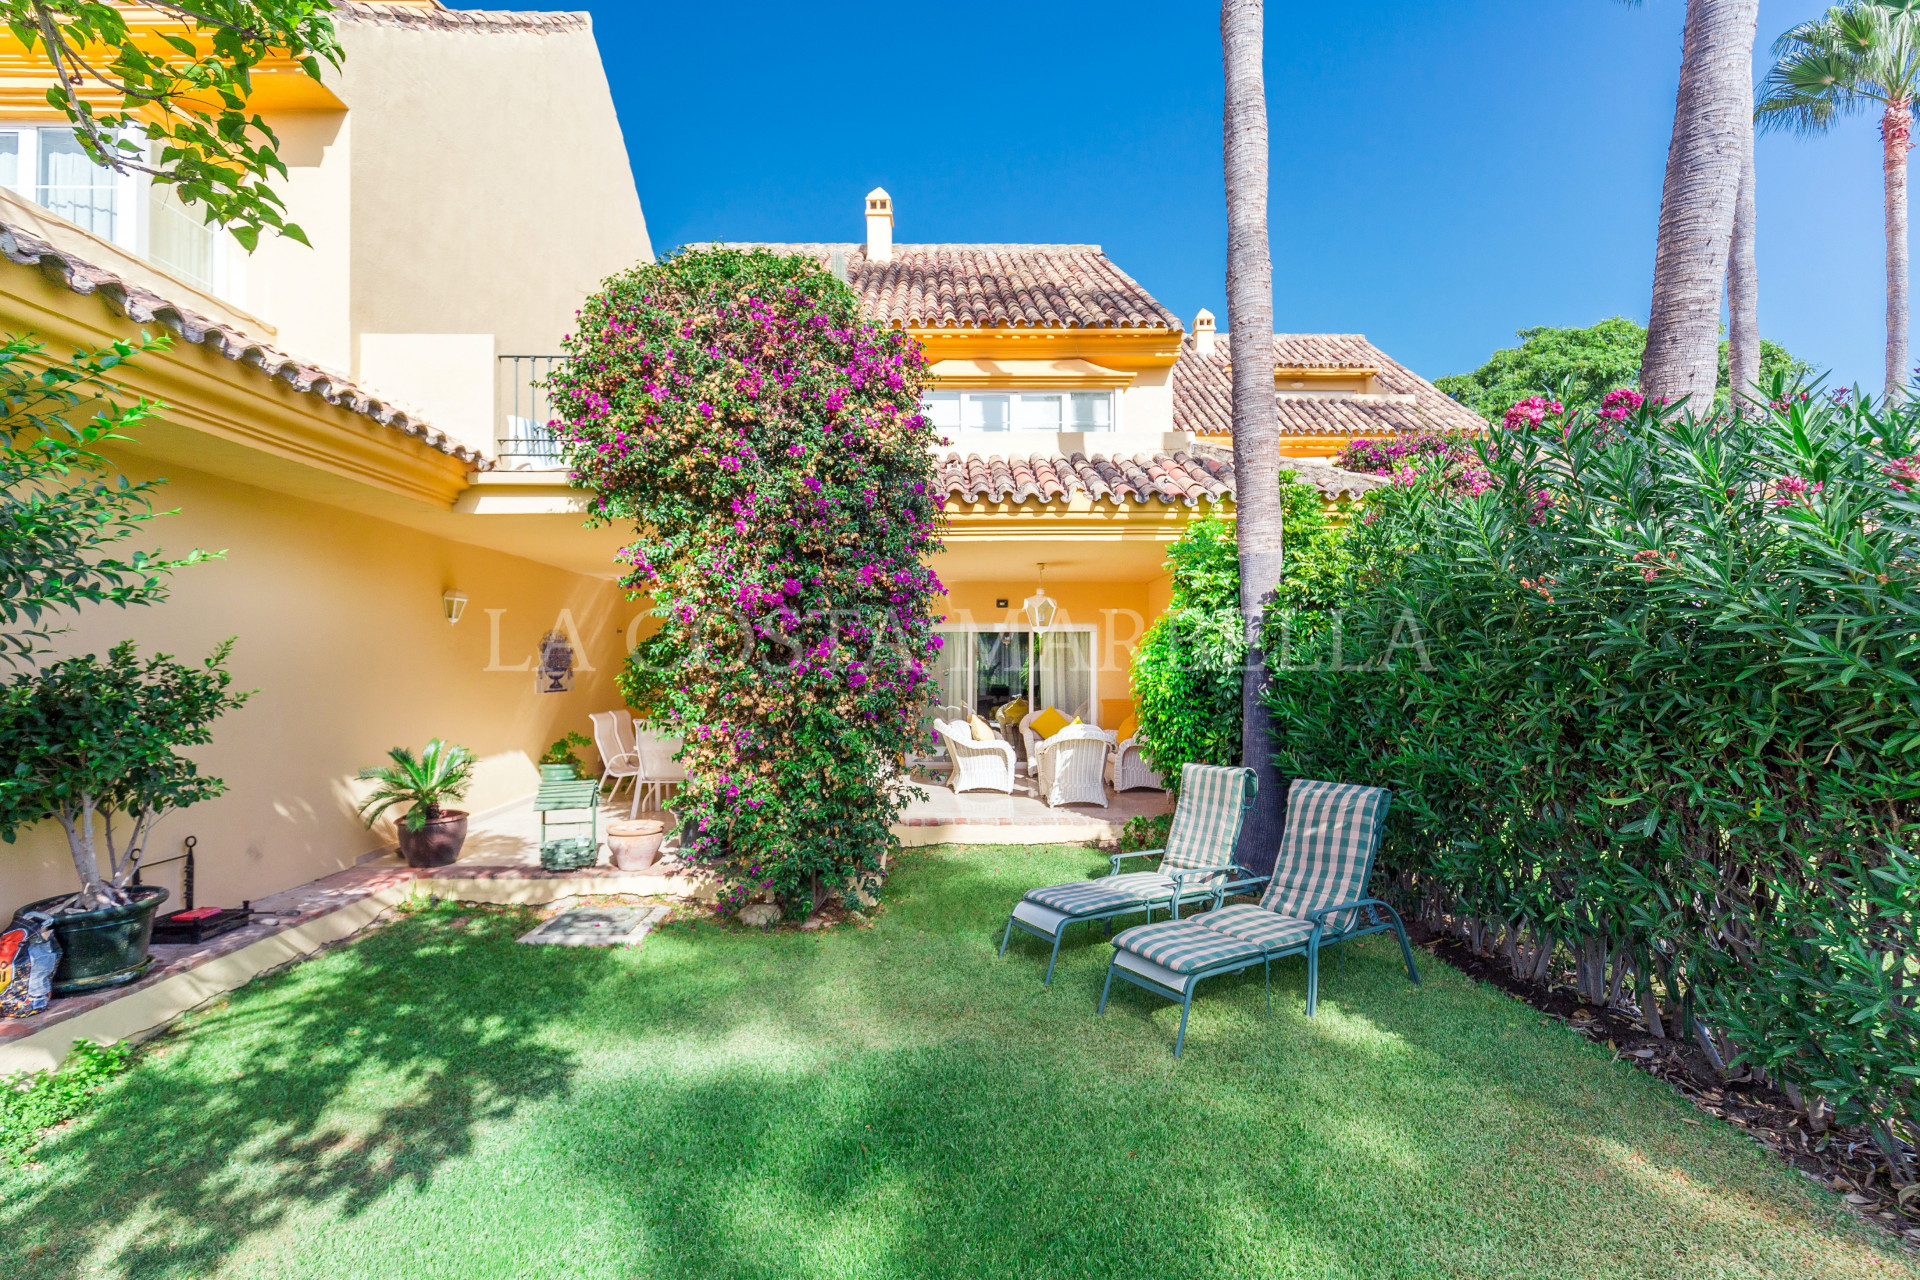 Spacious front-line golf 3 bedroom townhouse for sale with private garden in Rio Real Golf, Marbella